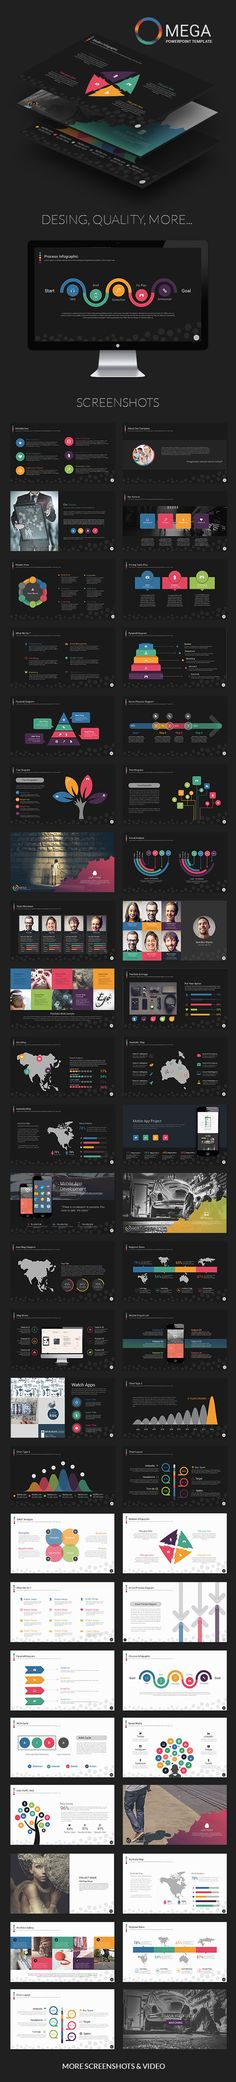 Powerpoint Template #design Download: http://graphicriver.net/item/omega-powerpoint-template/11830122?ref=ksioks